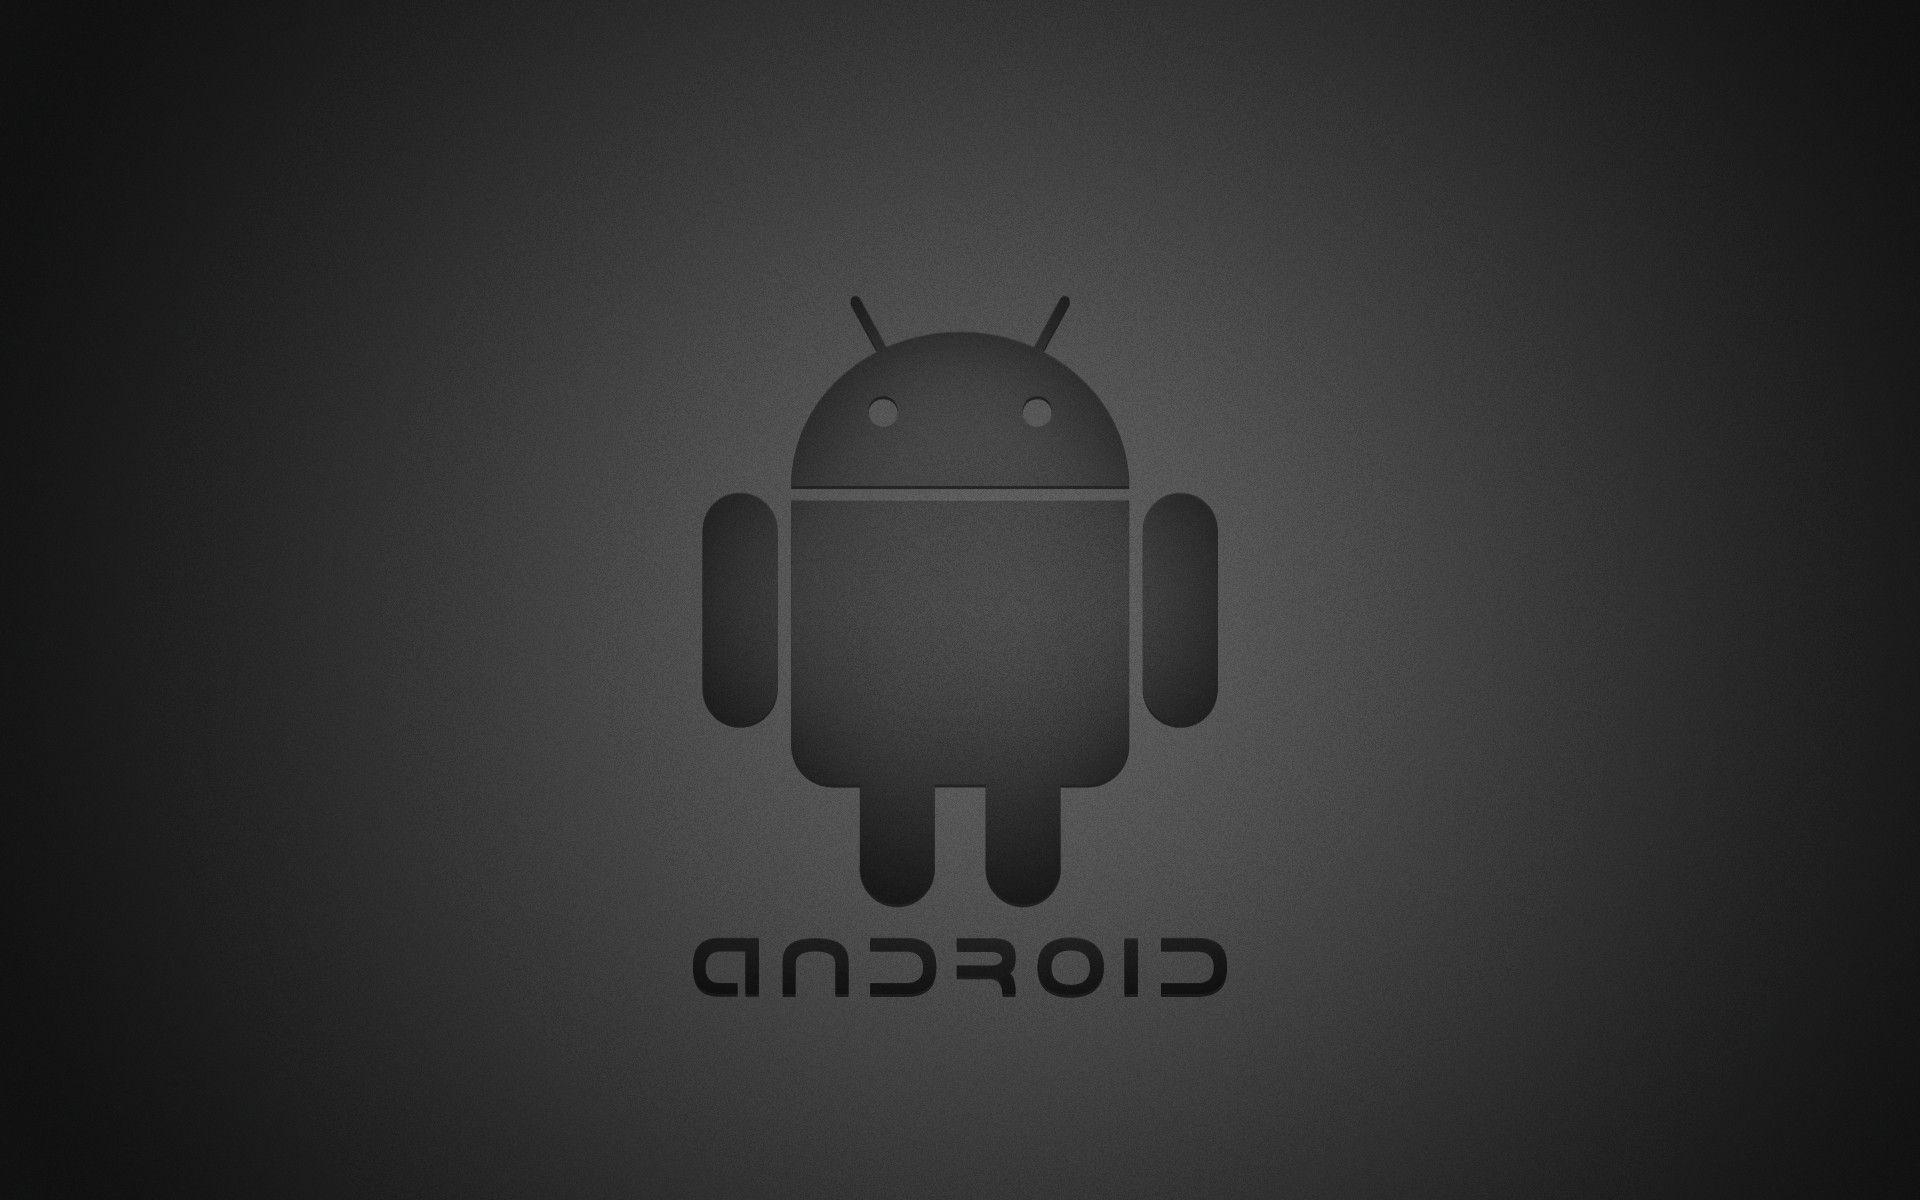 Android Logo Wallpapers Wallpaper Cave